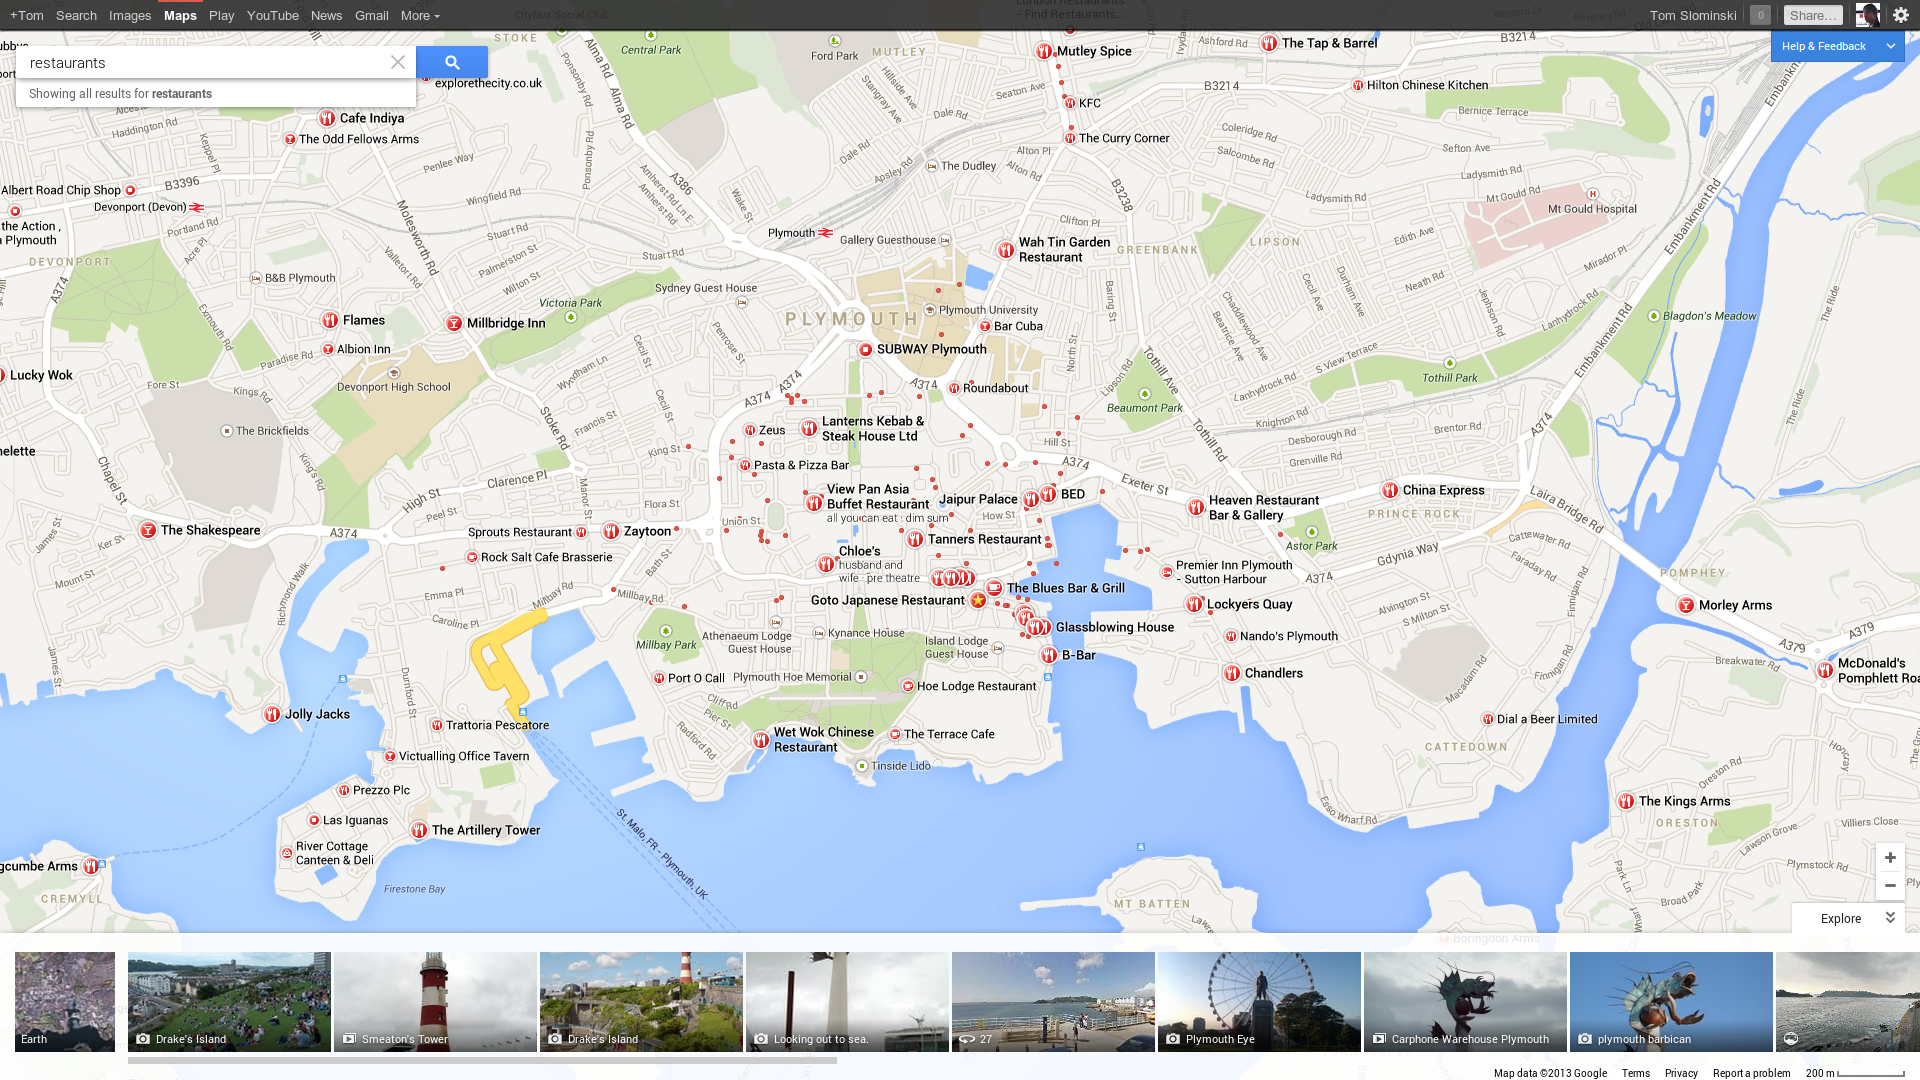 searching for something displays most important results as big icons on the map with the